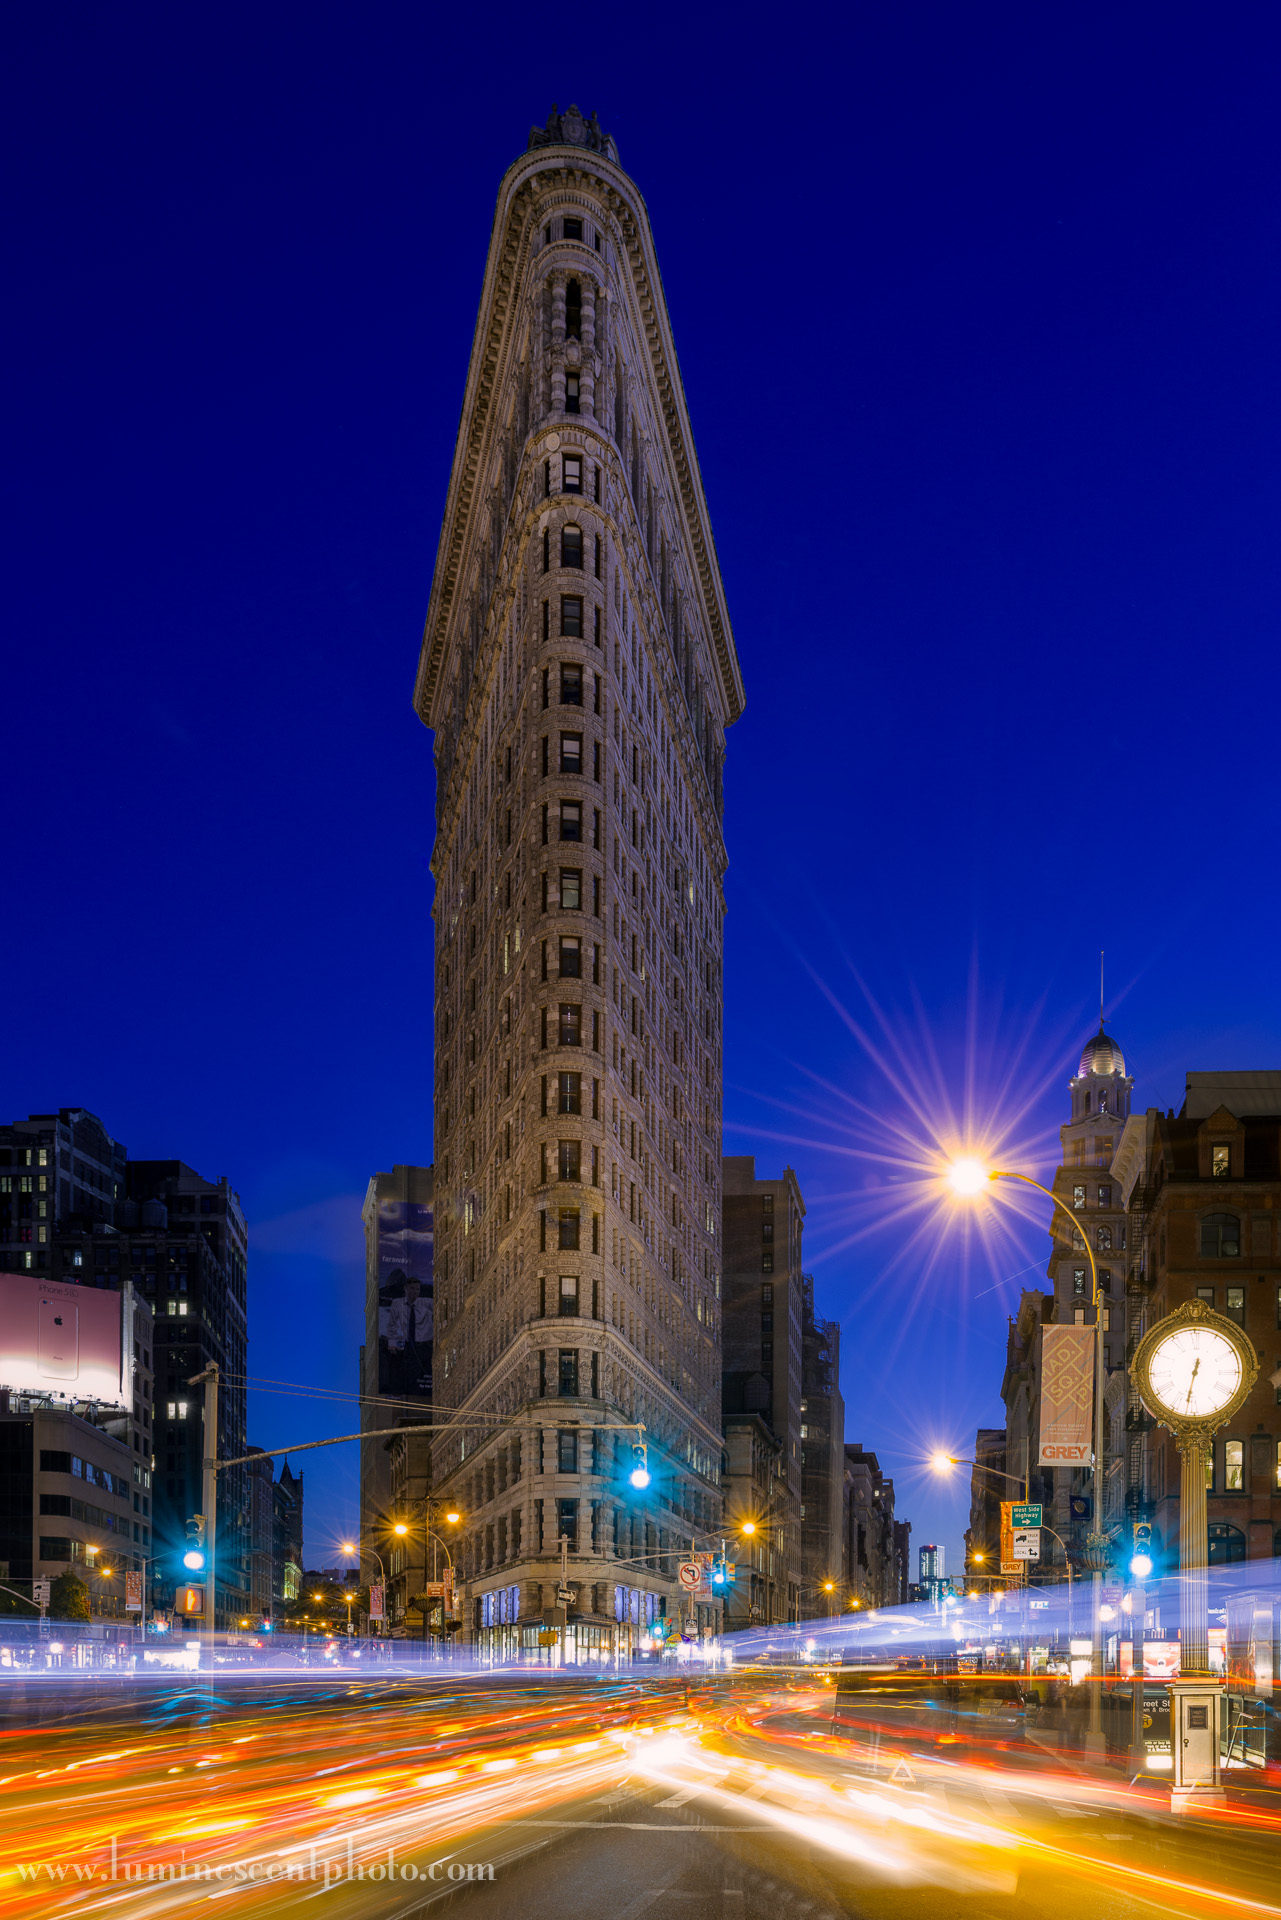 Flatiron Building at twilight, NYC. 25s exposure with Nikon D800e.